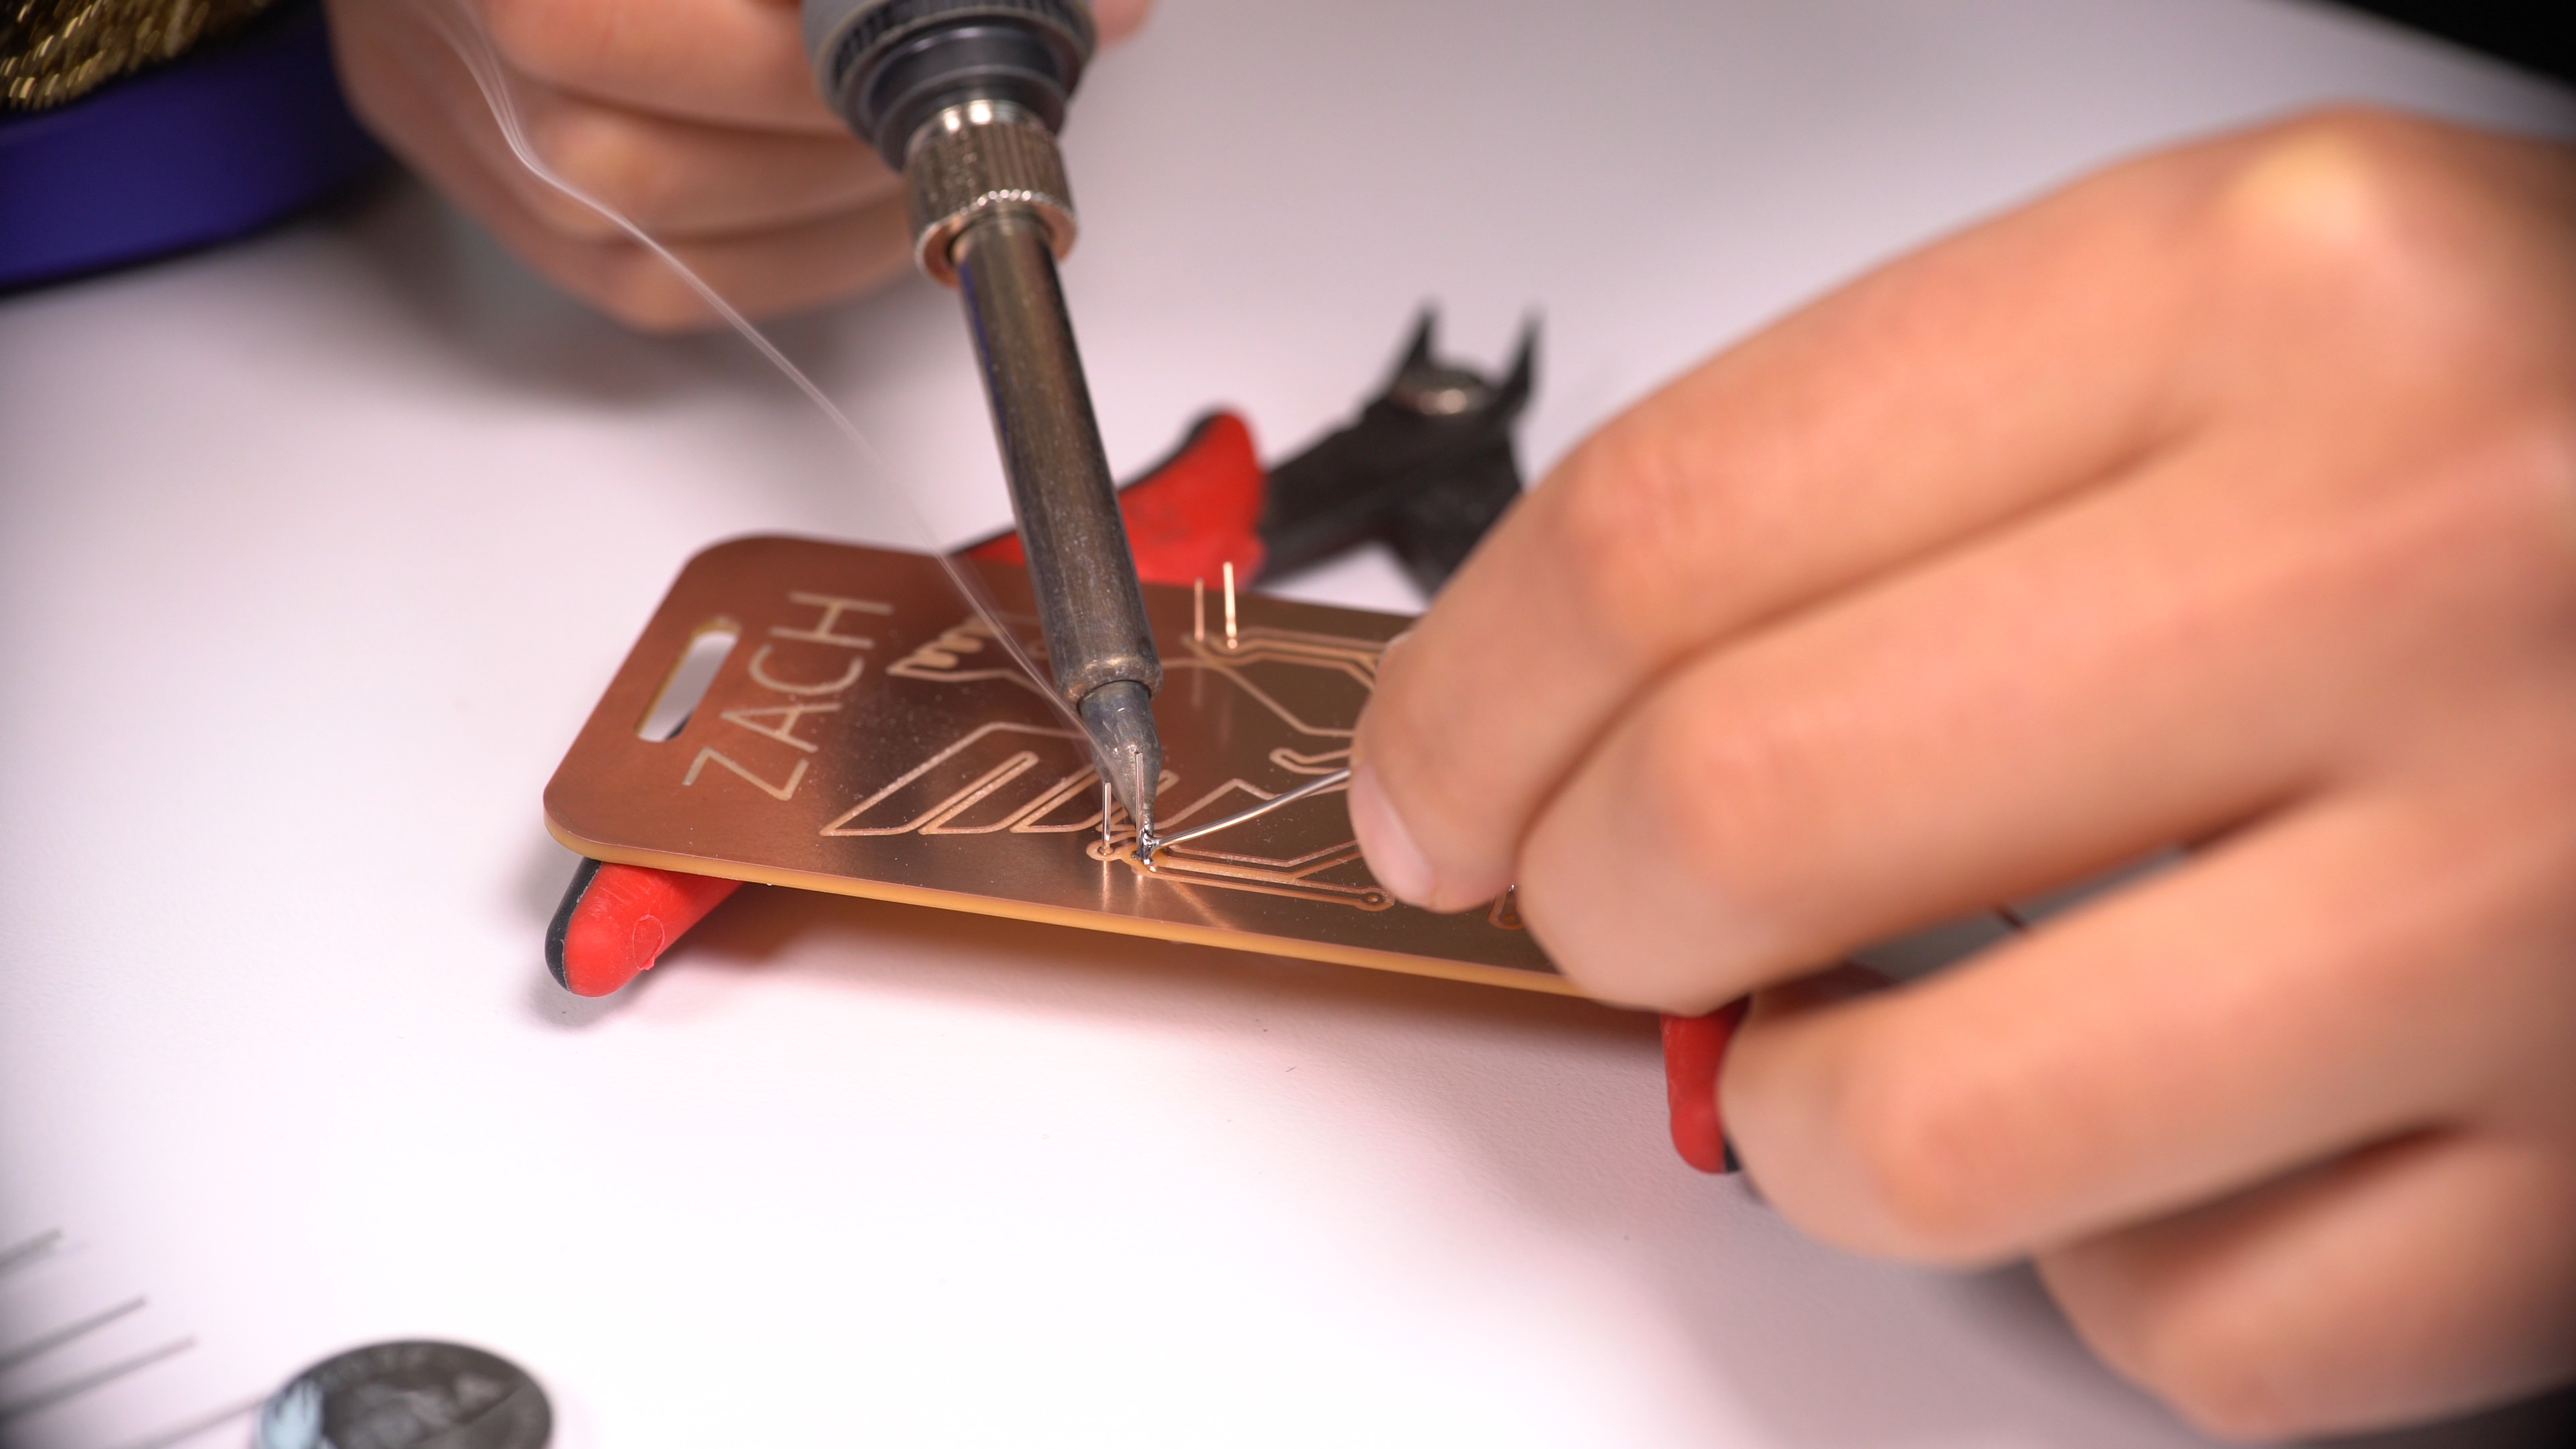 Soldering-LEDs-PCB-Badge-Project-Bantam-Tools.jpg